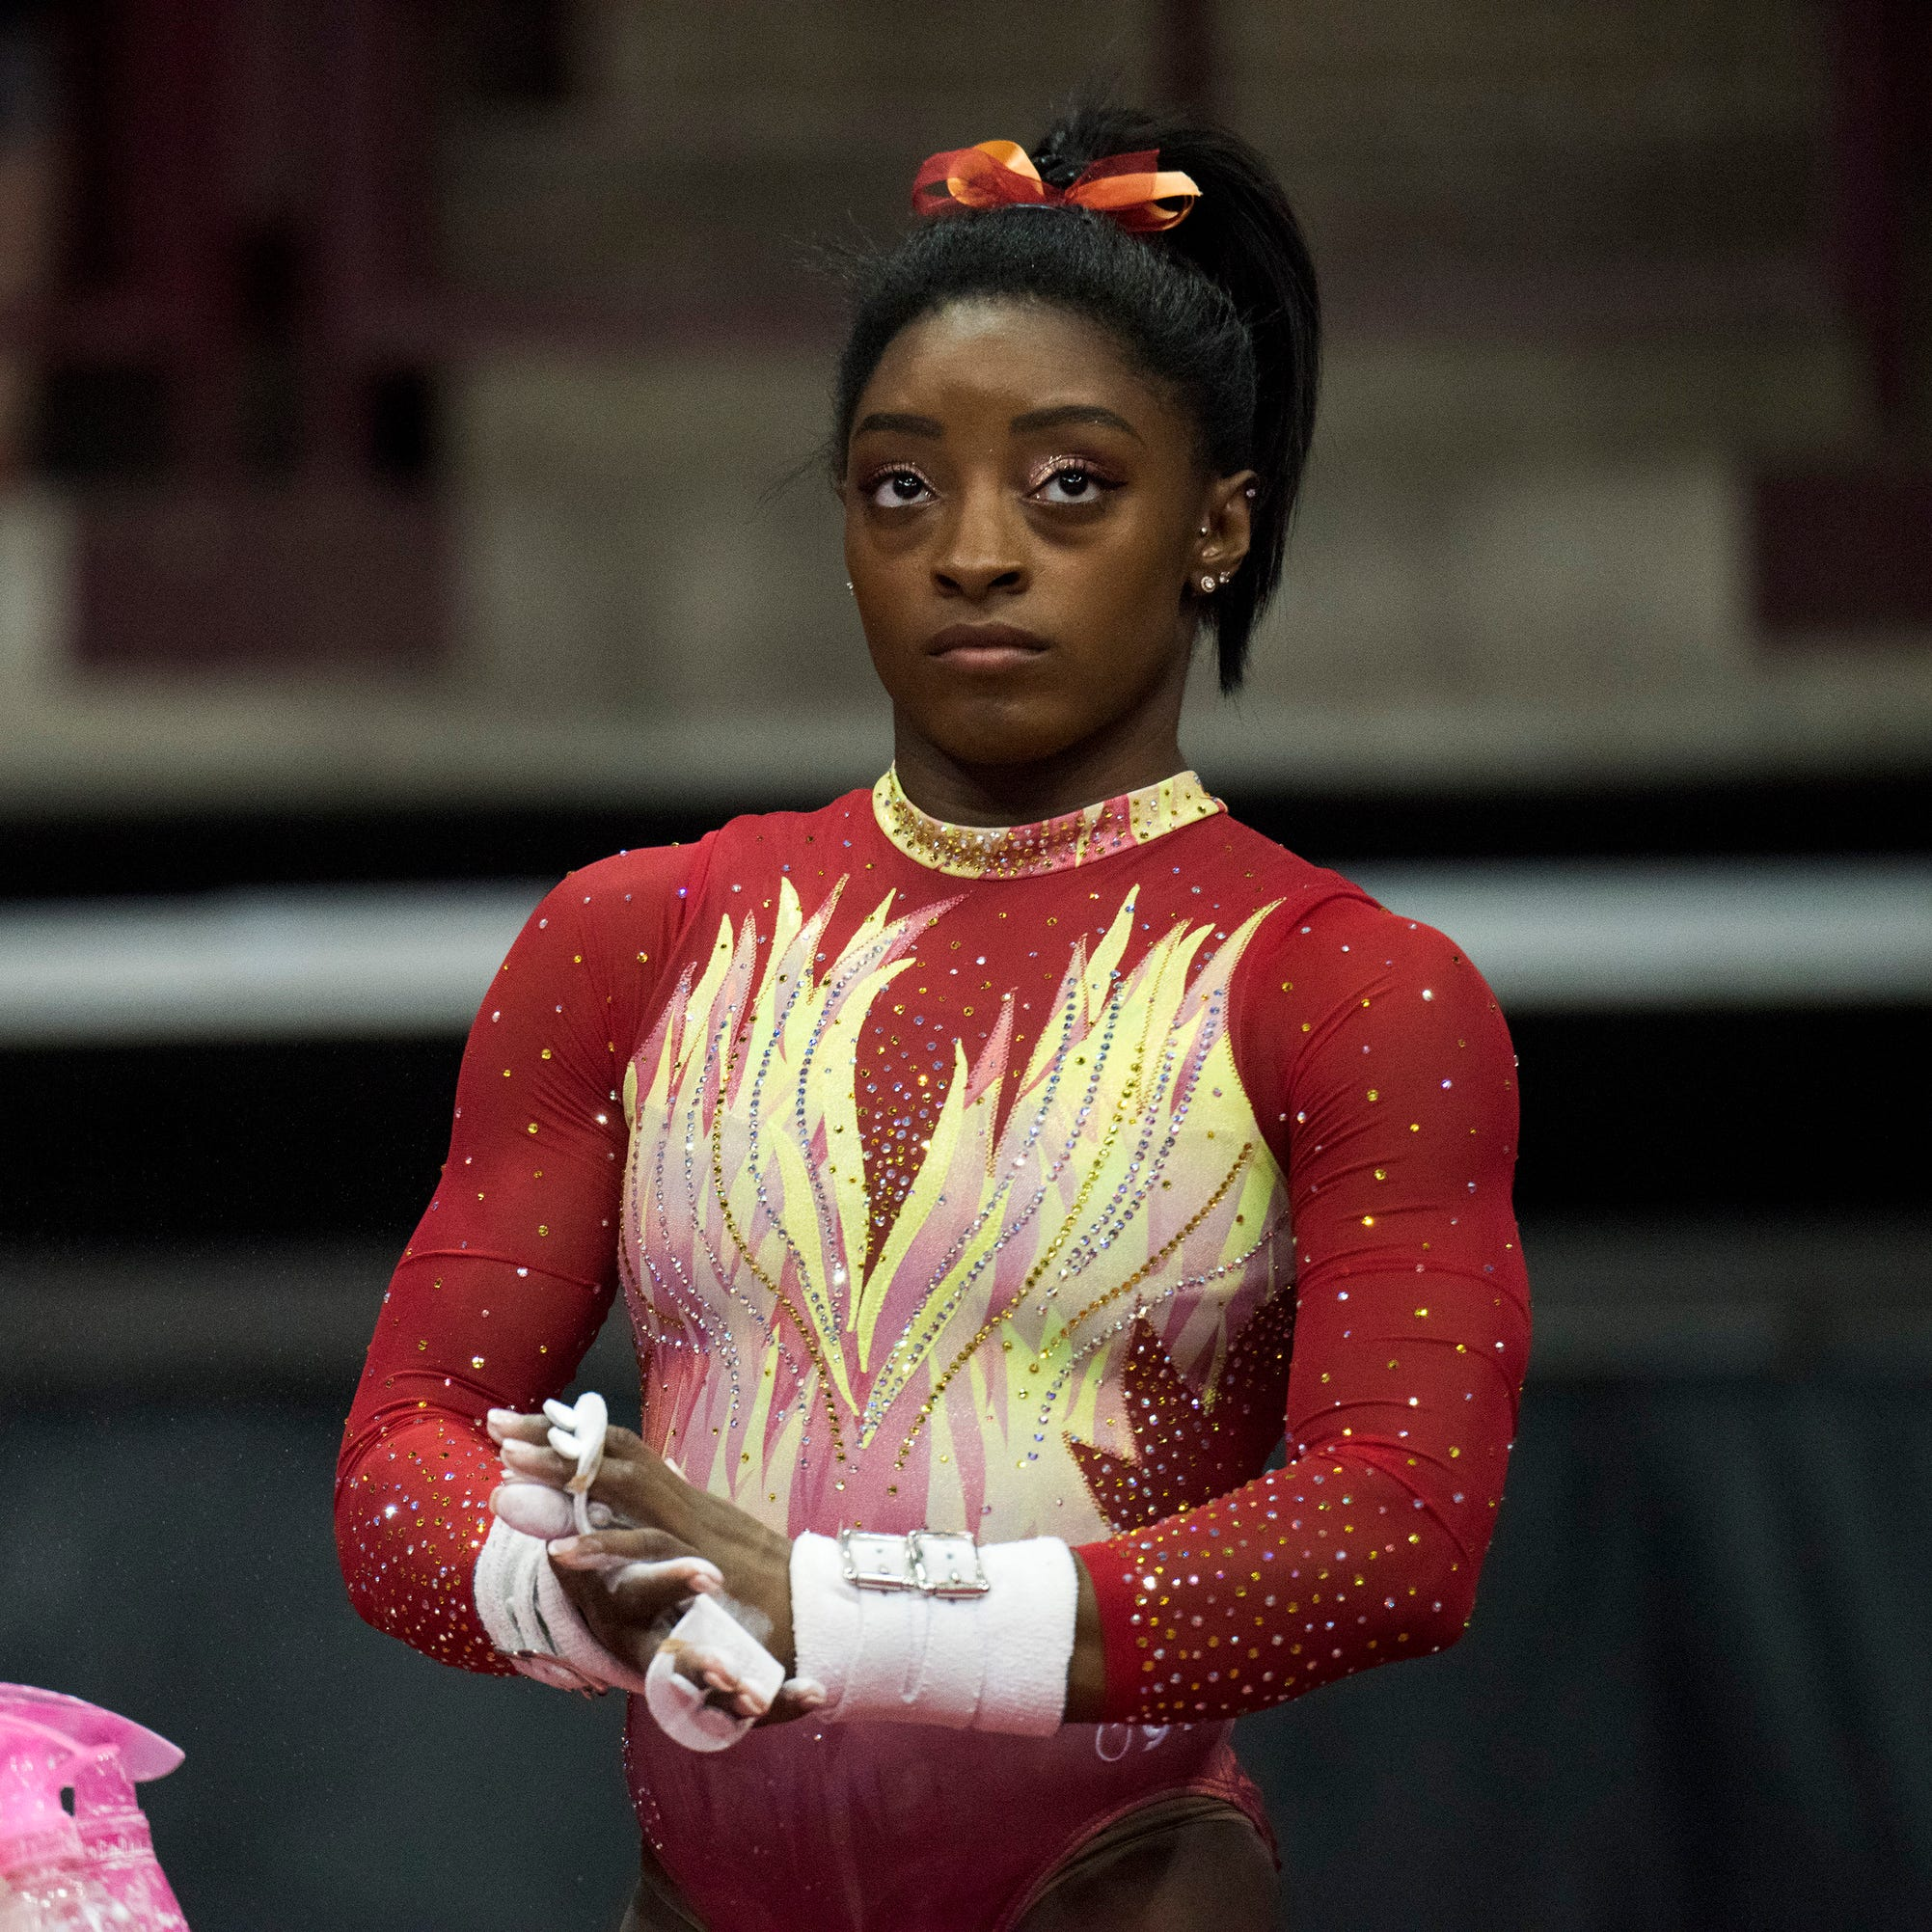 With two years until Tokyo Olympics, gymnast Simone Biles better and virtually untouchable